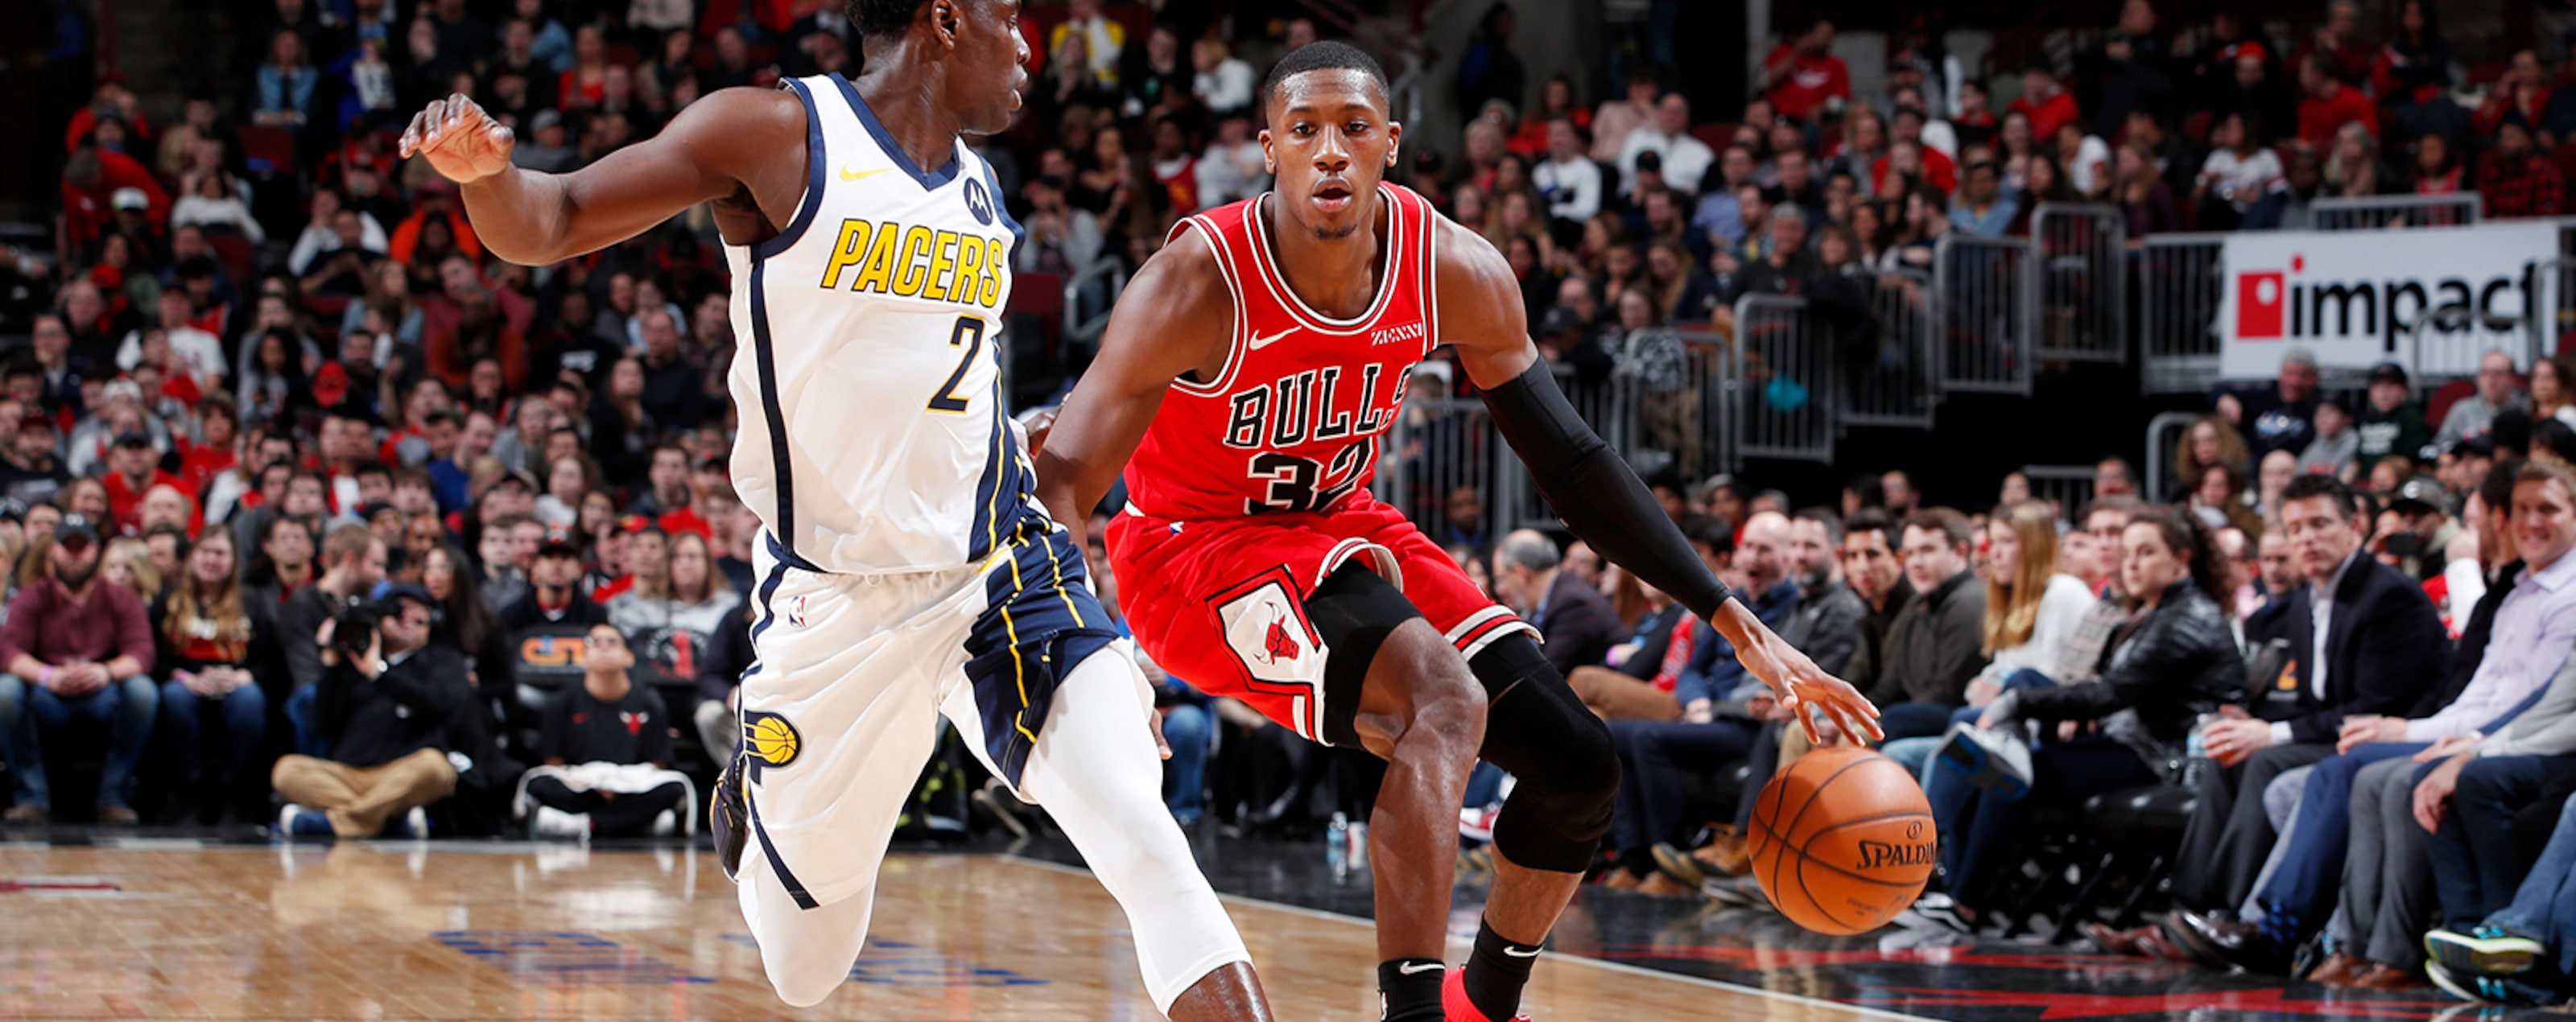 Kris Dunn dribbles the ball against the Pacers